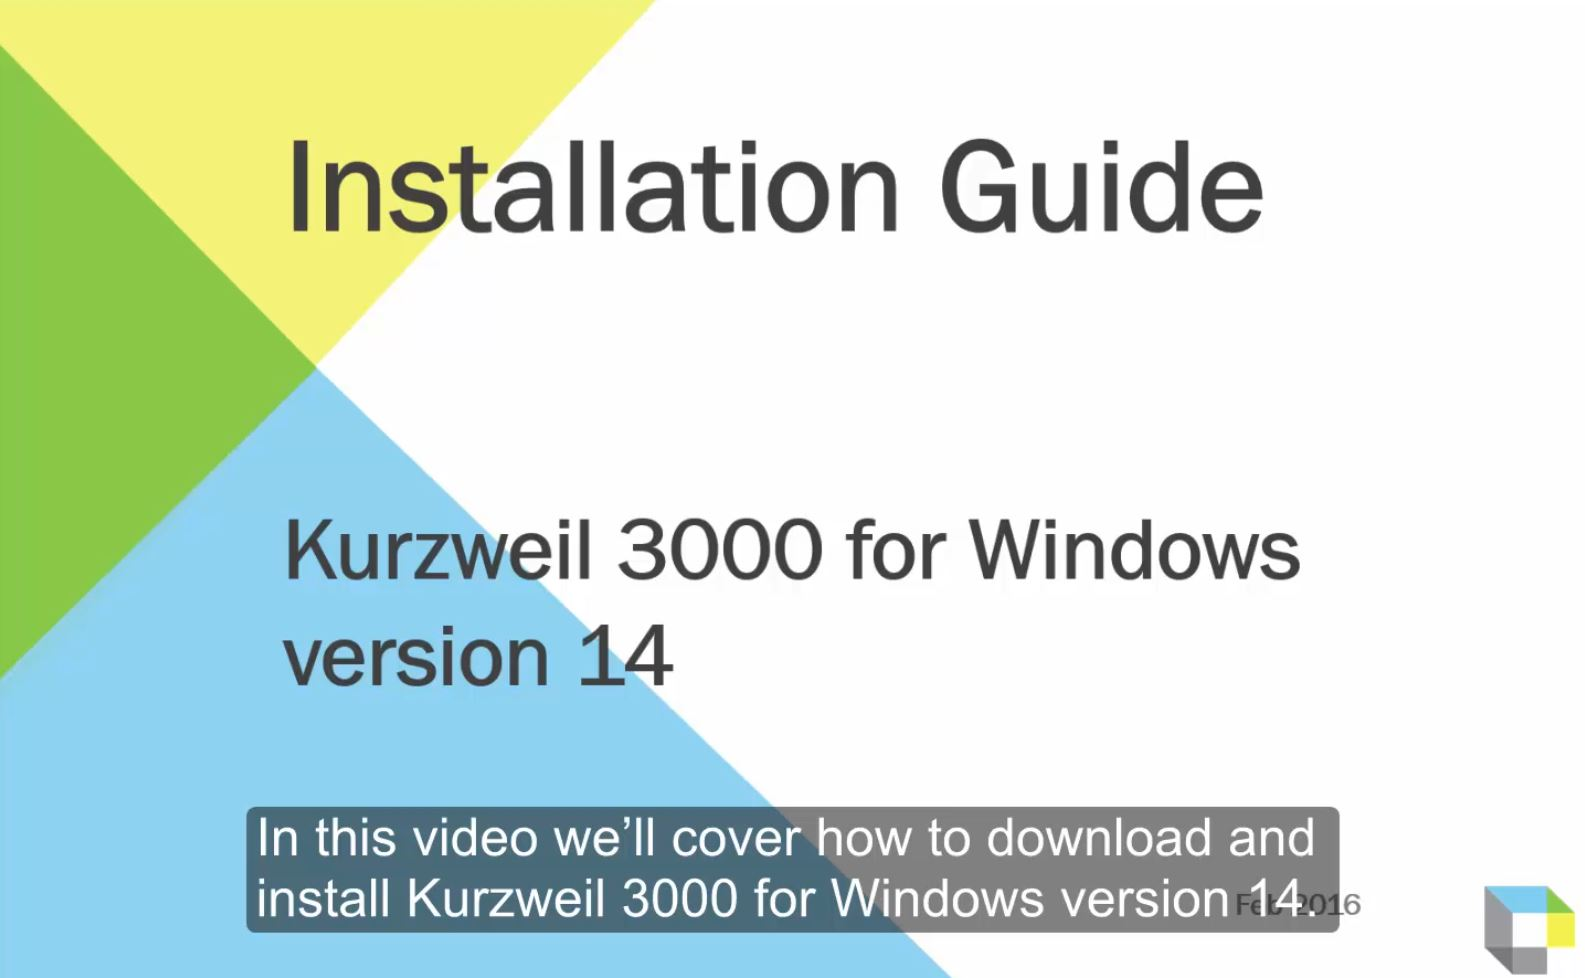 Installation of Kurzweil 3000 for Windows Walkthrough